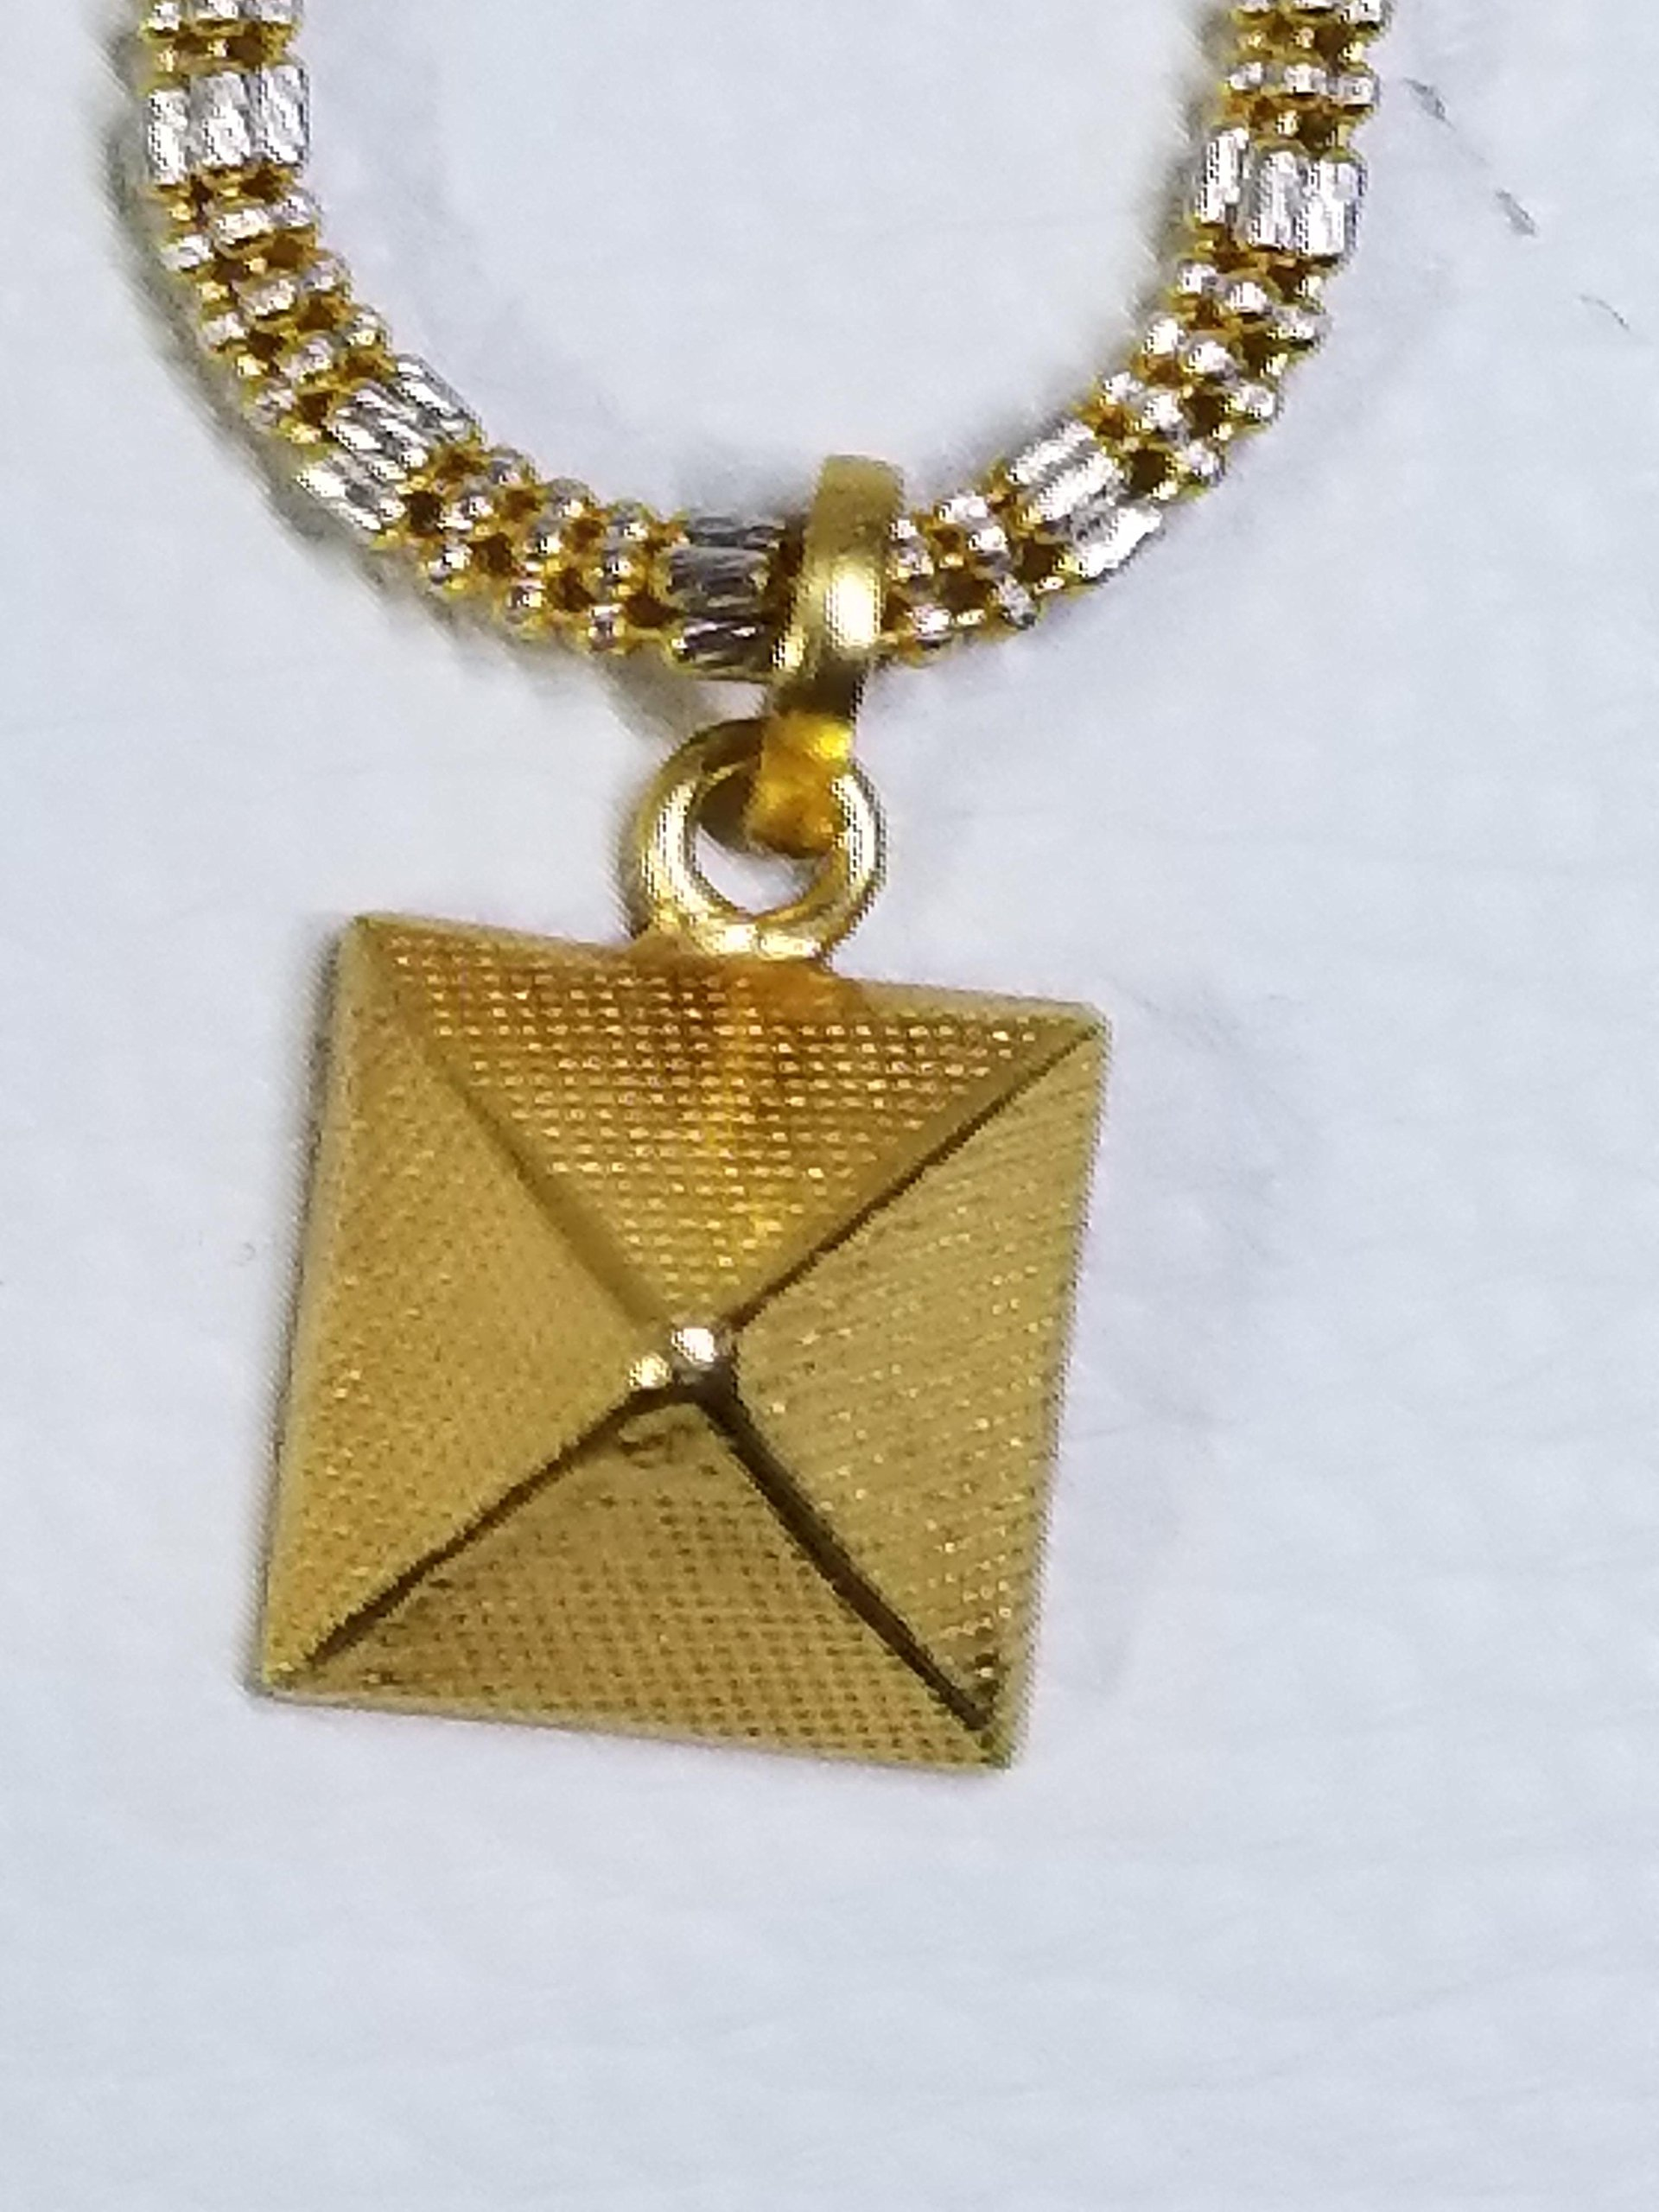 Wellness Goodies 22K Gold Pyramid Pendant | Increase and attract positive energies | Improve your mental, physical, emotional, social and financial health |